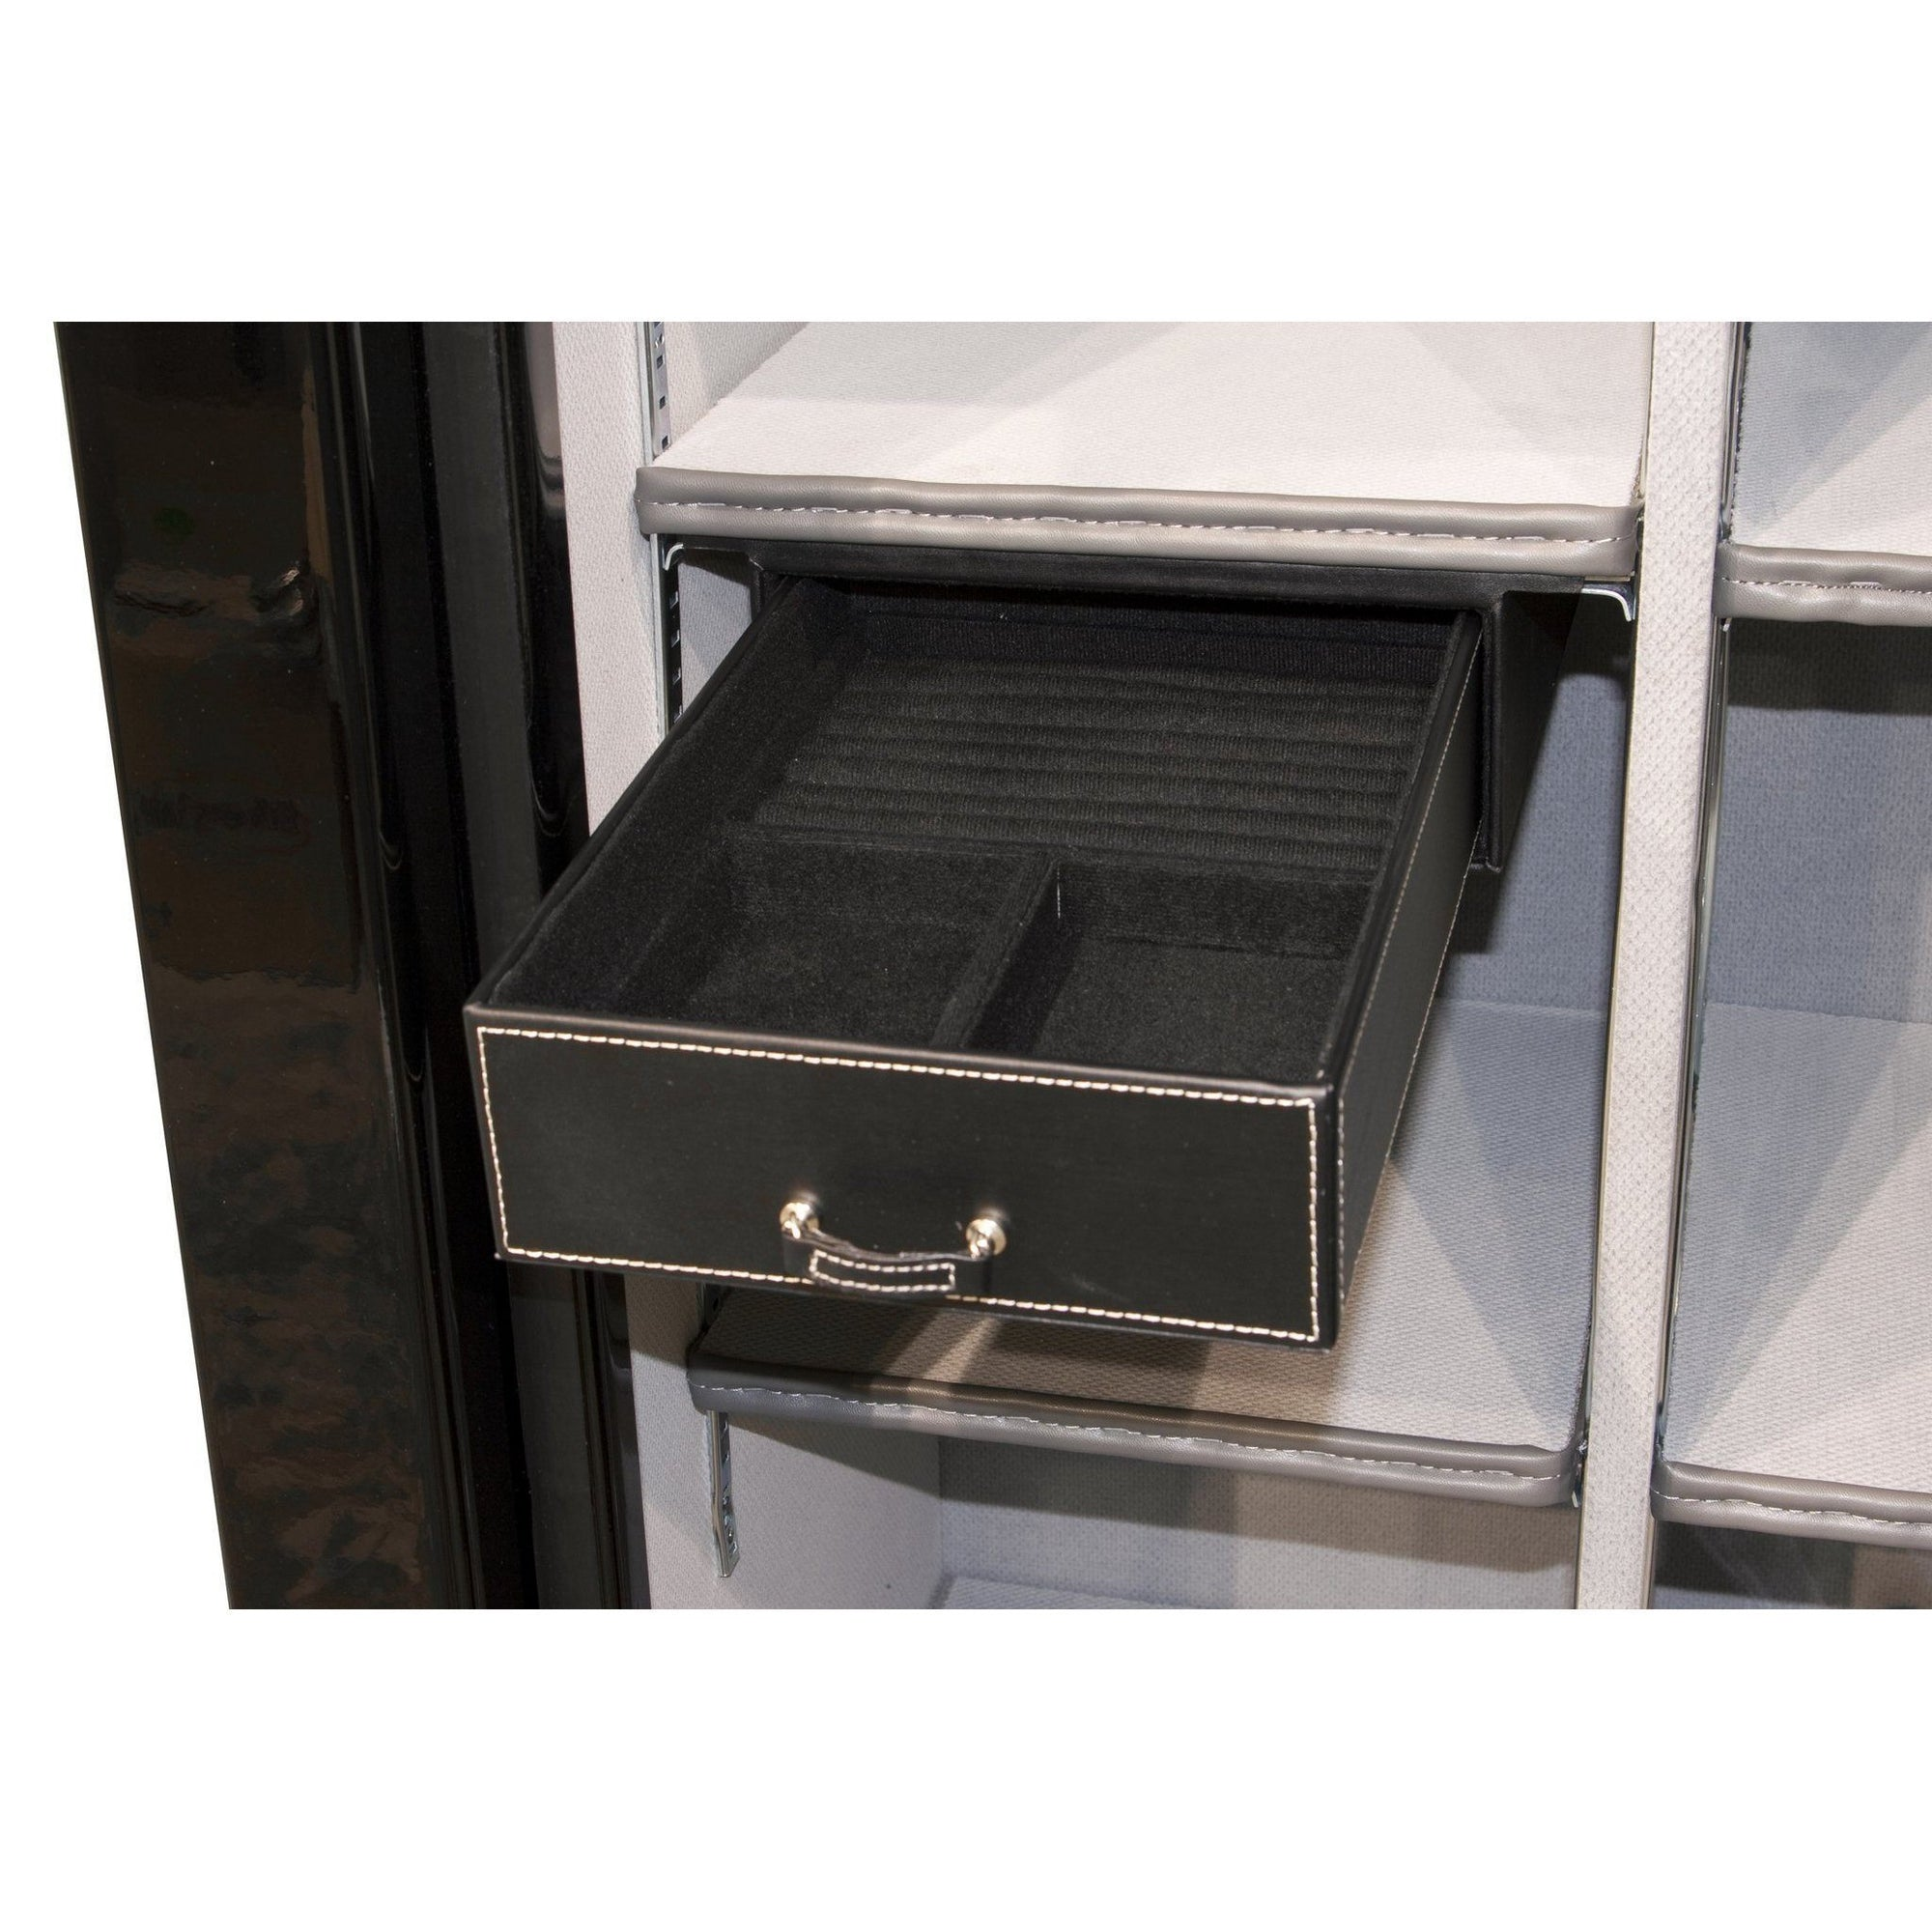 Liberty Safe-accessory-storage-jewelry-drawer-8-5-inch-under-shelf-mount-23-50-size-safes